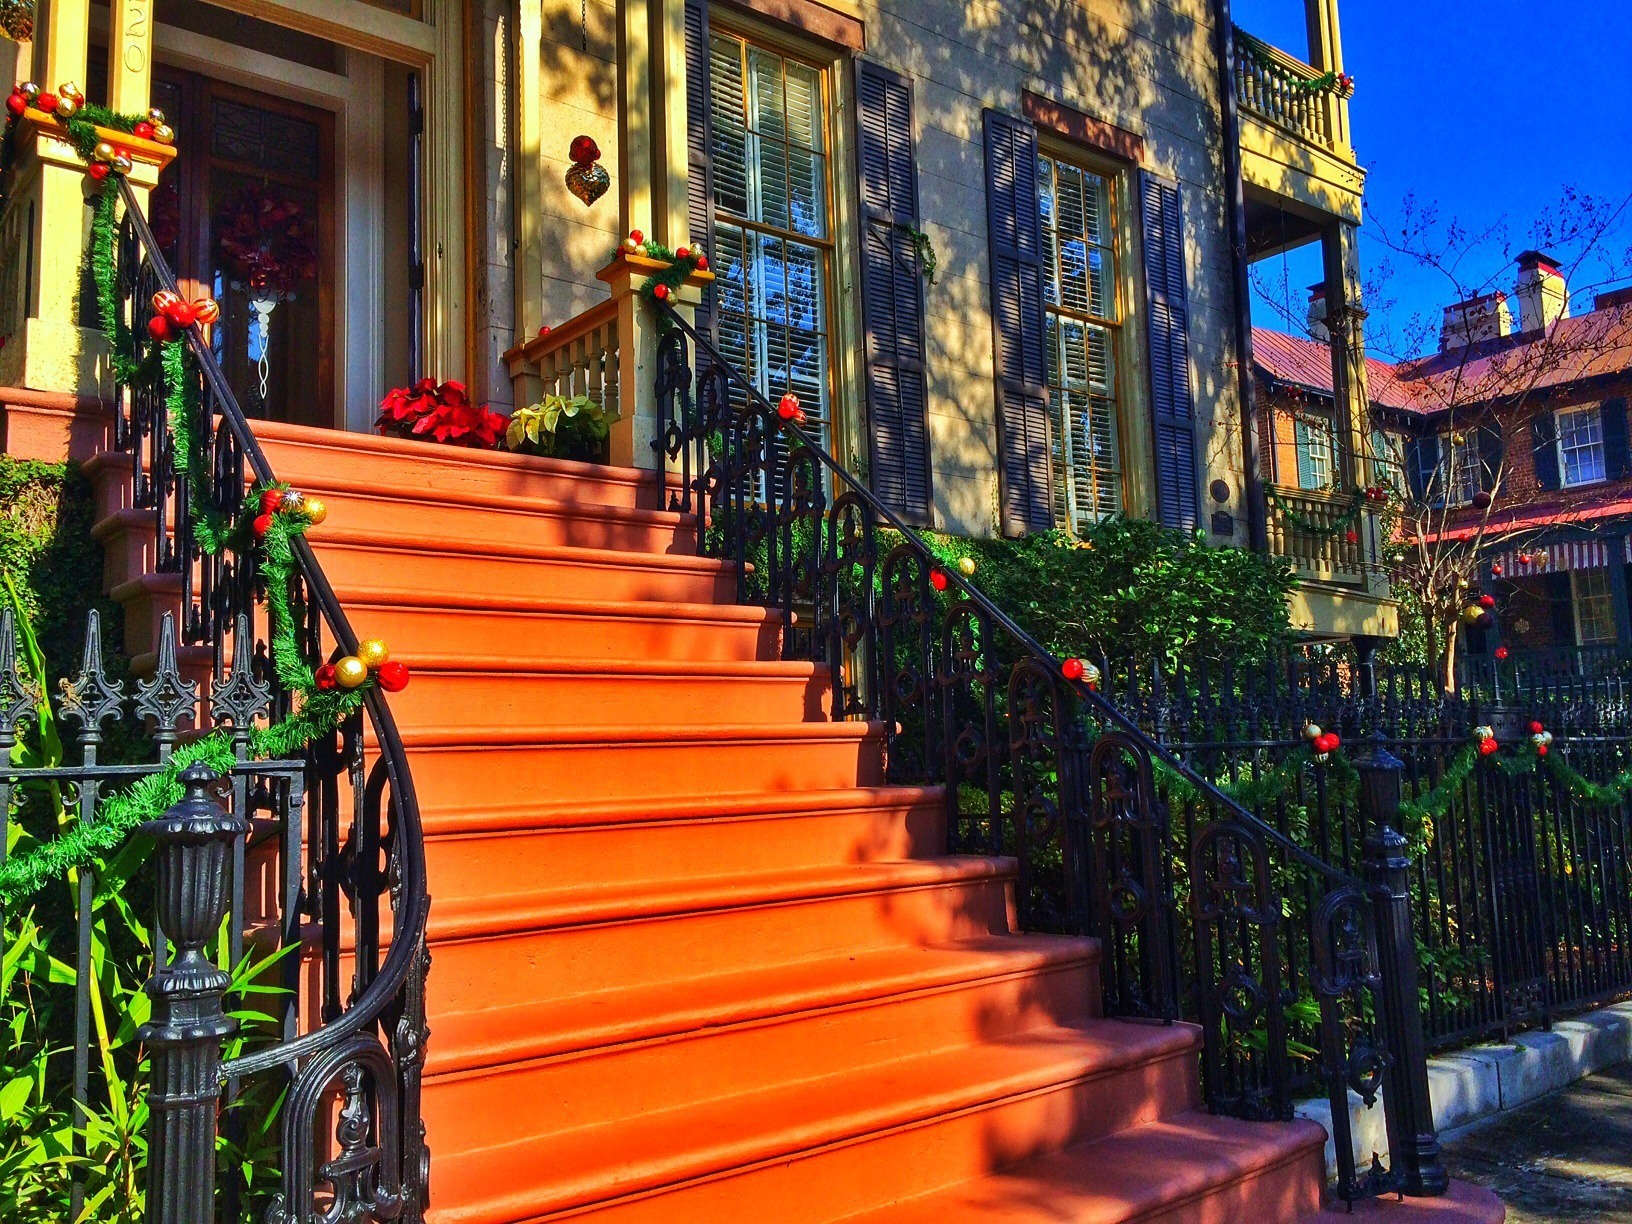 Beautifully decorated home s during the holidays in Savannah, Ga